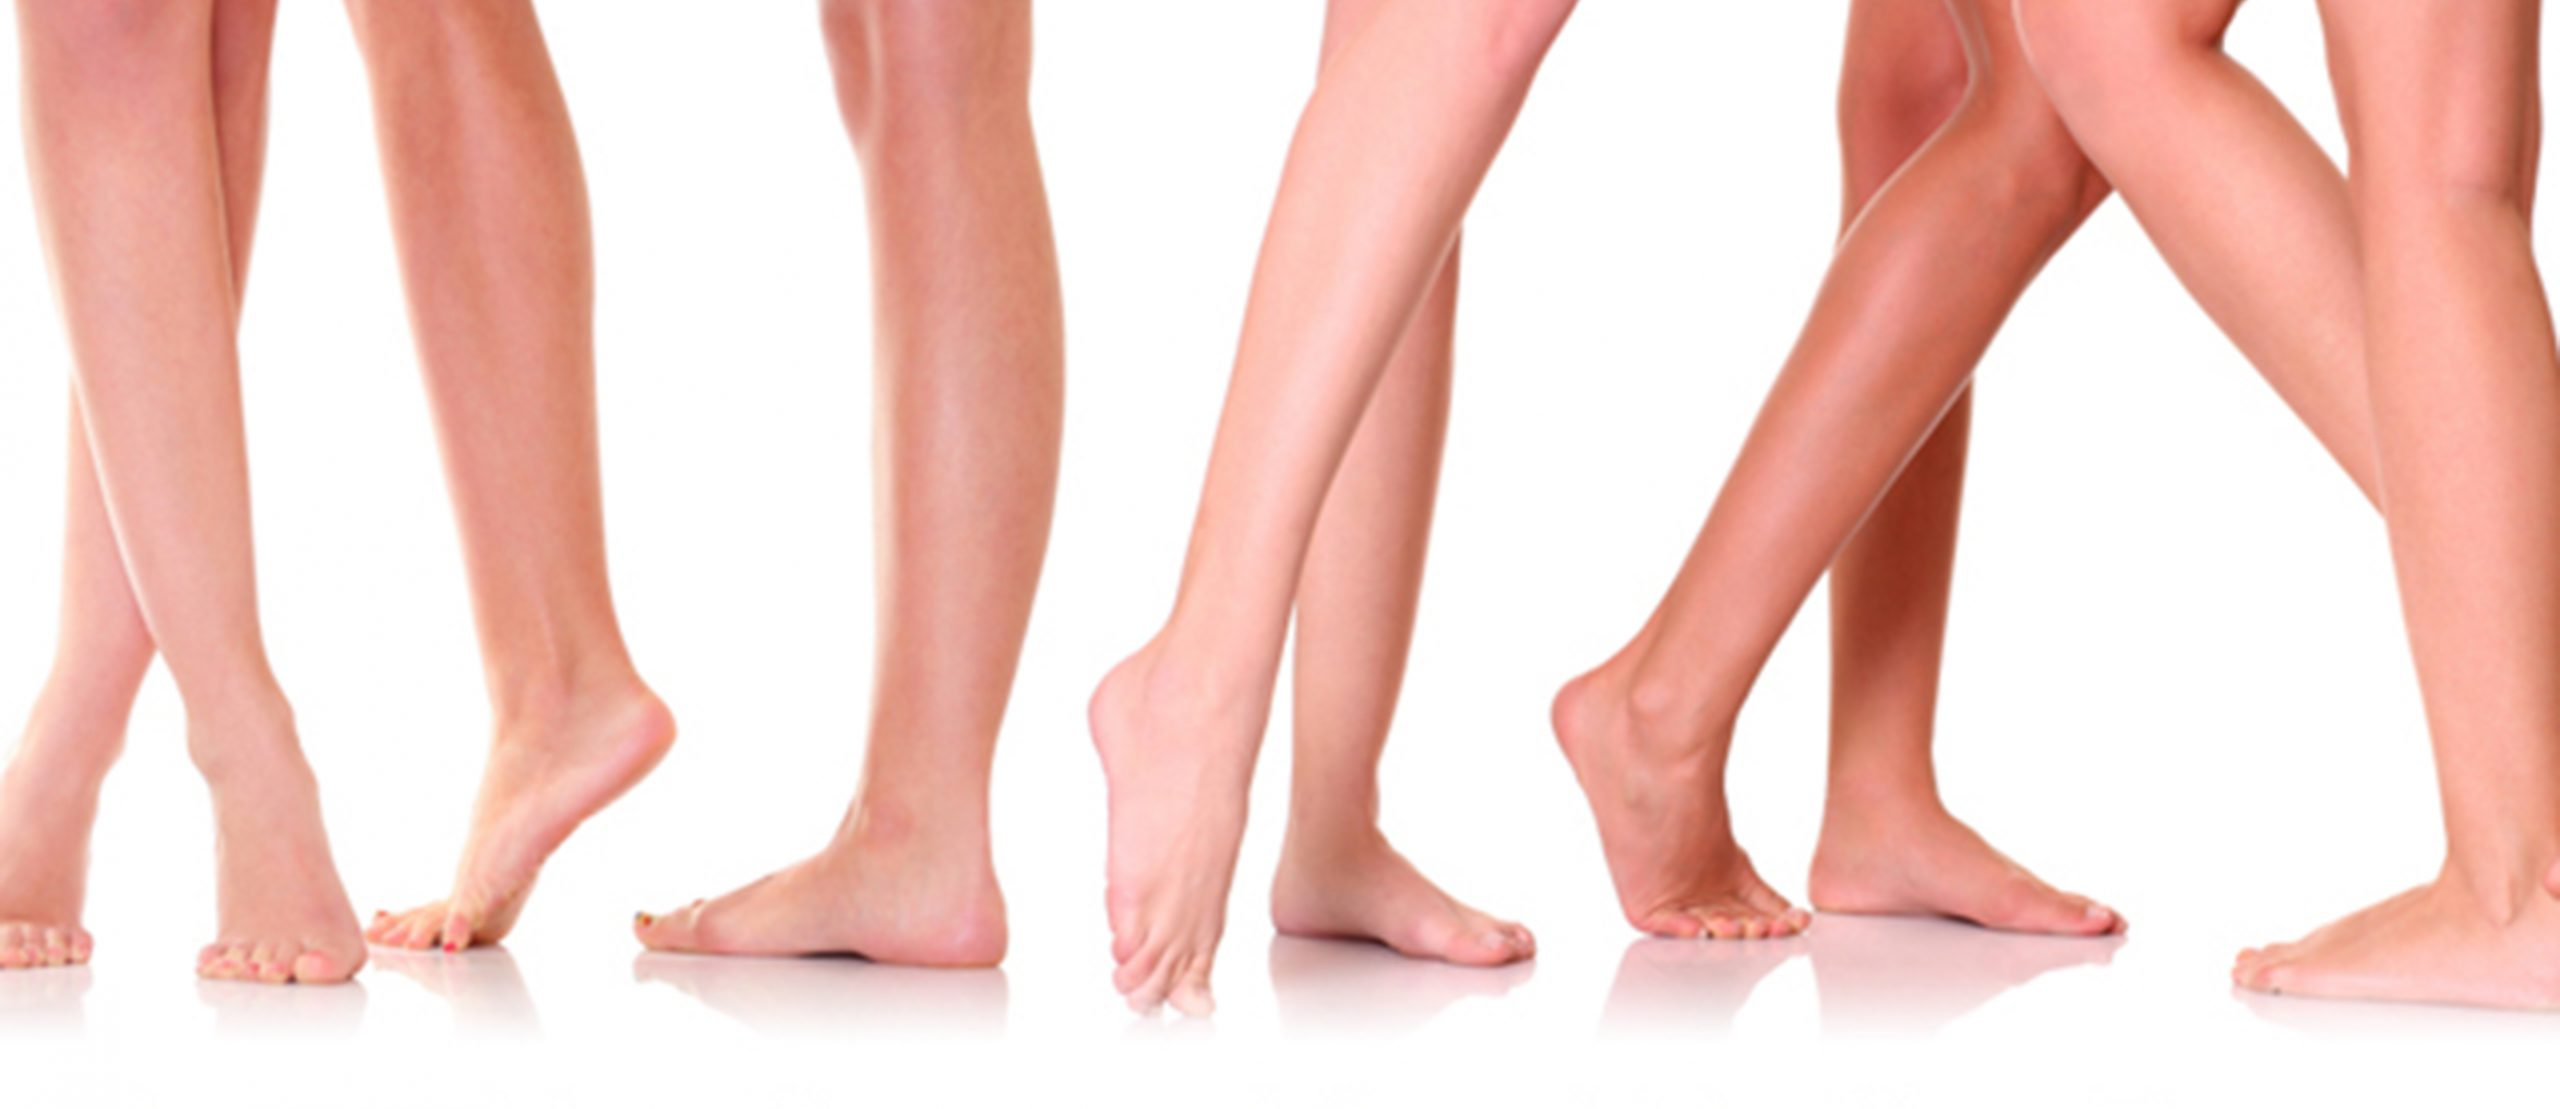 Why Should You Opt For Laser Treatment For The Hair Removal Above?